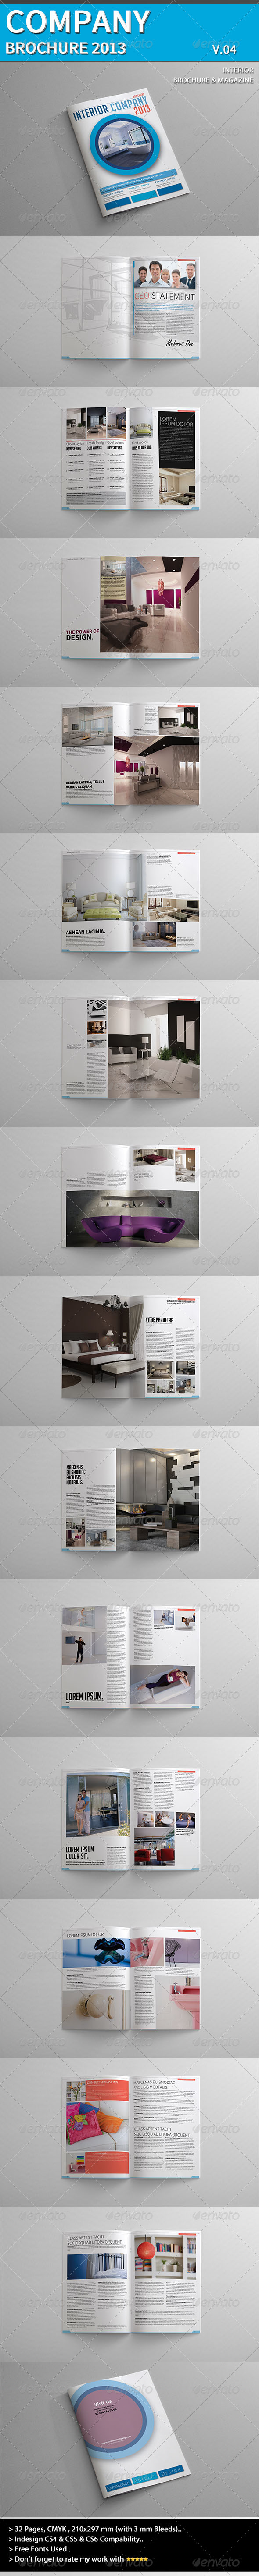 Company Brochure 2013 Part 04 - Corporate Brochures